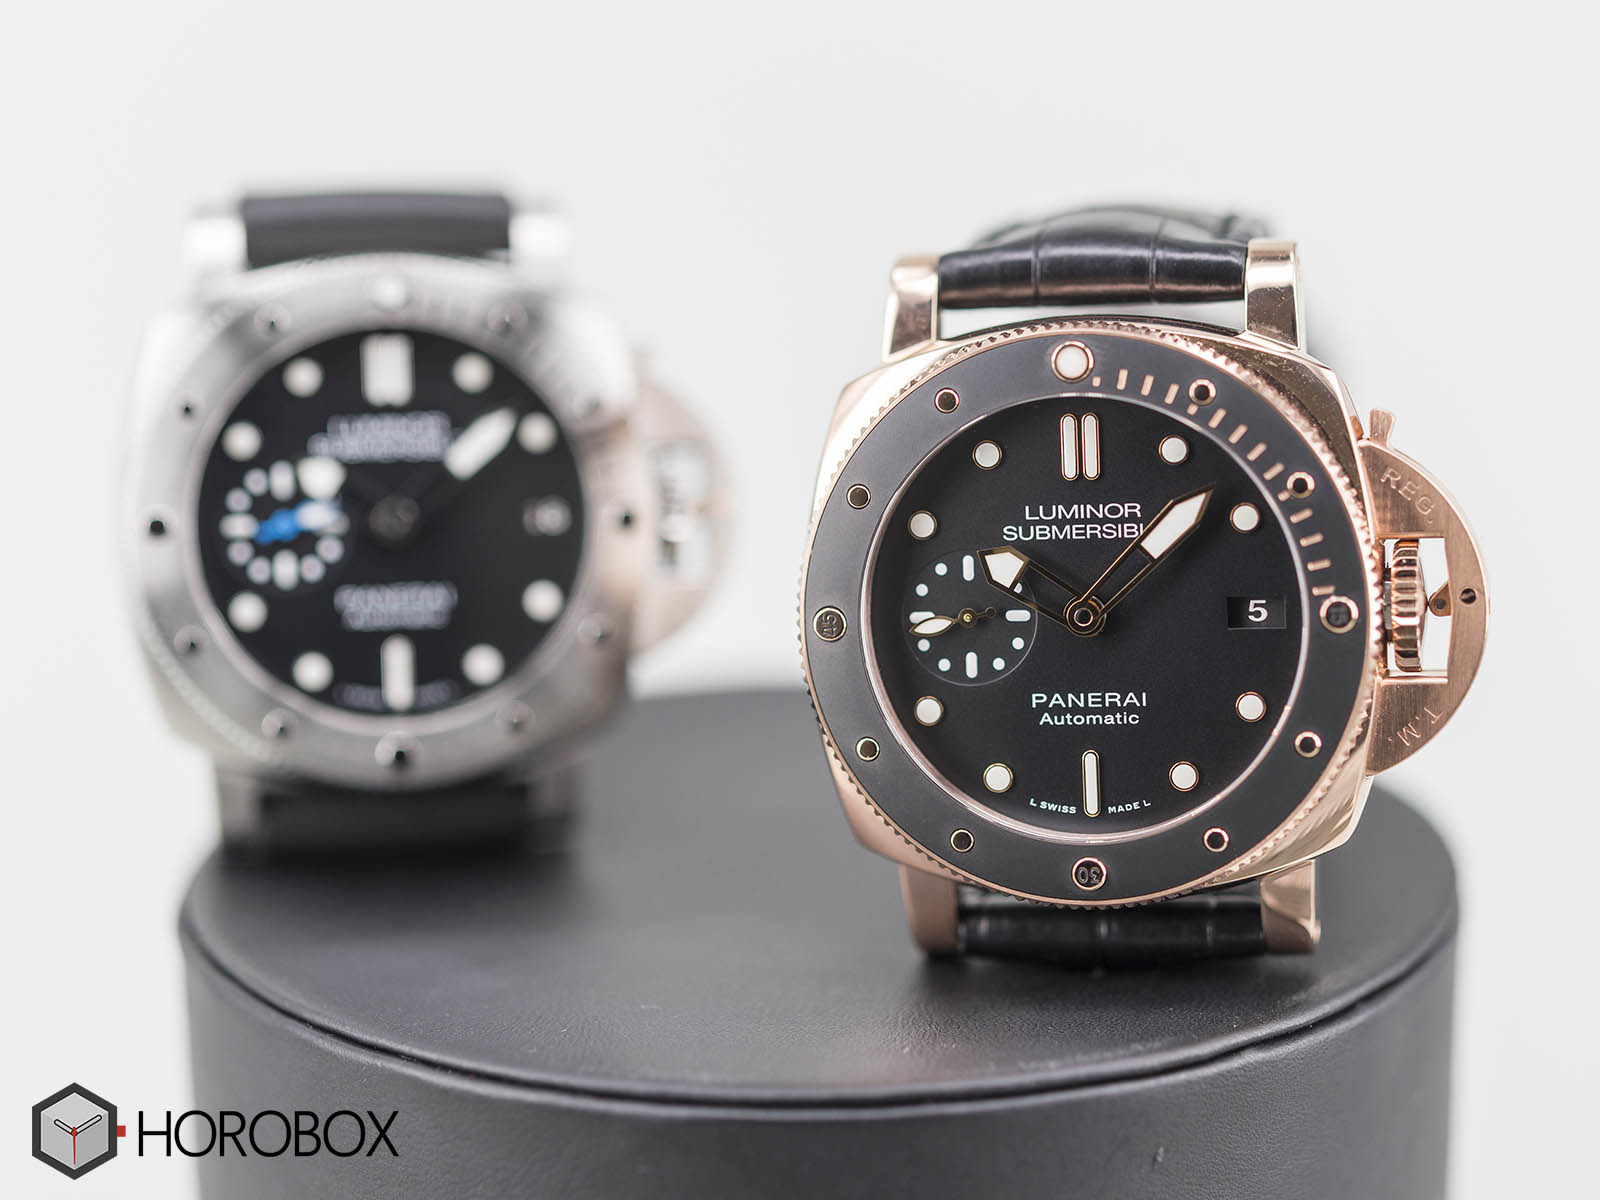 panerai-luminor-1950-submersible-pam00682-pam00684-3.jpg